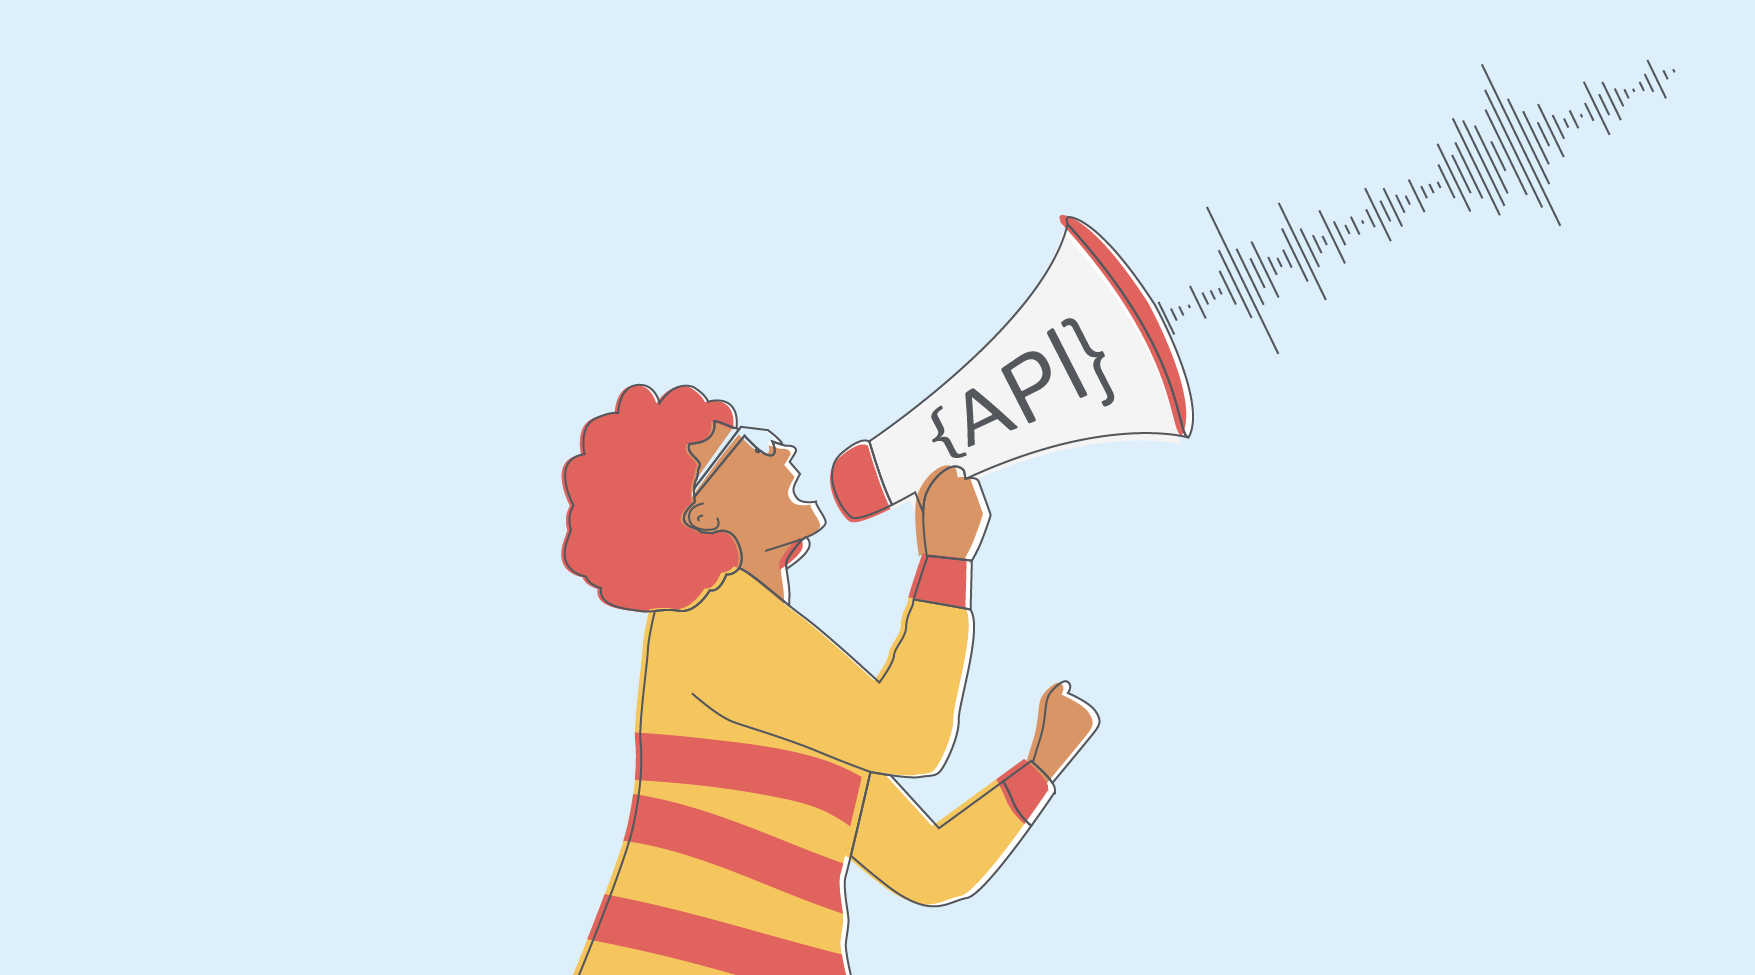 Illustration of a megaphone enclosed within API computing symbols.